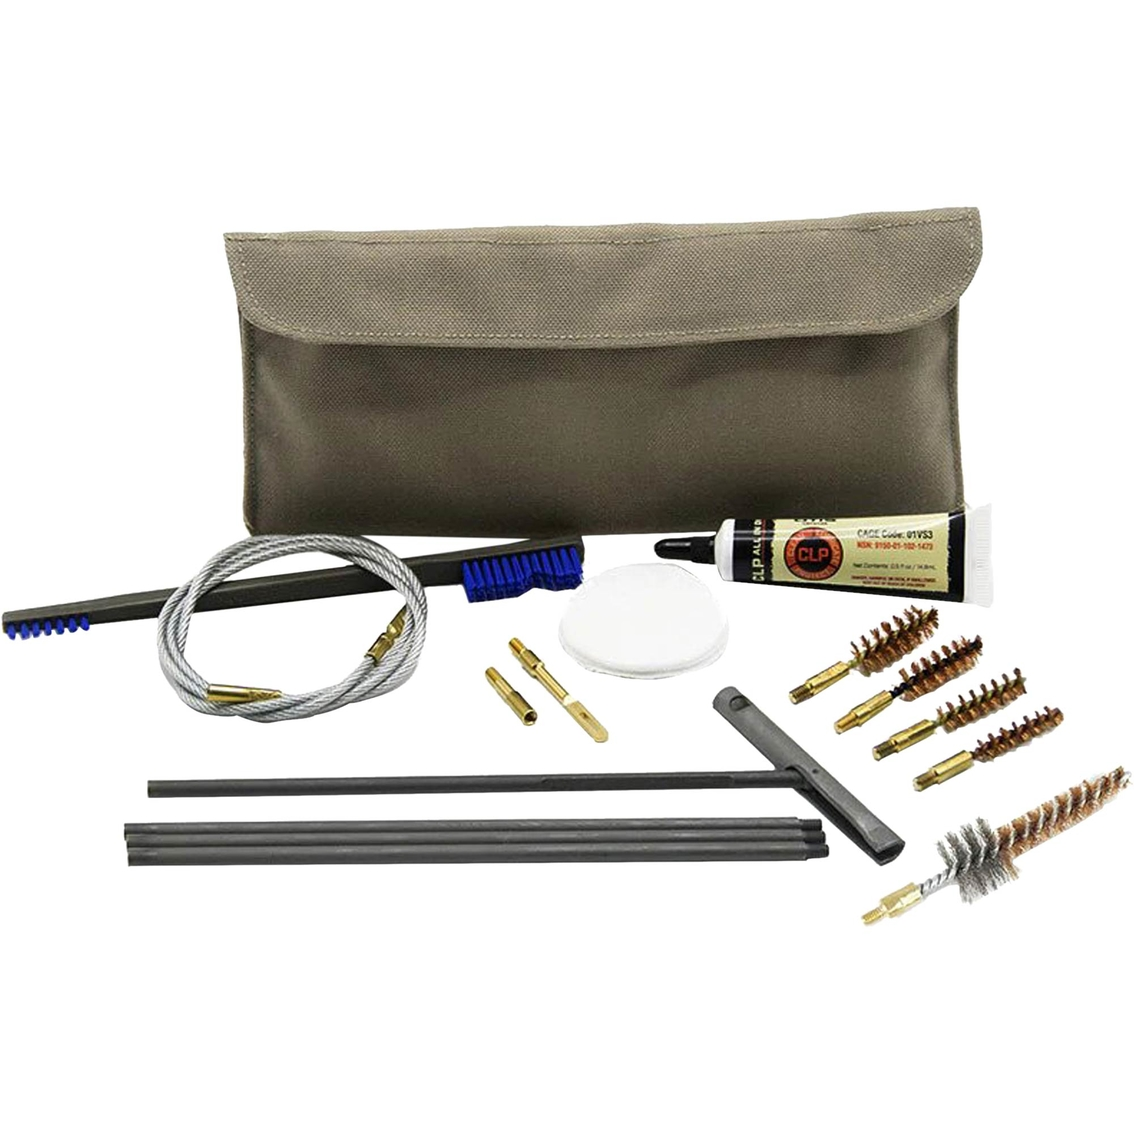 New Empty M16 Portable Cleaning Tool Kit Set Pouch